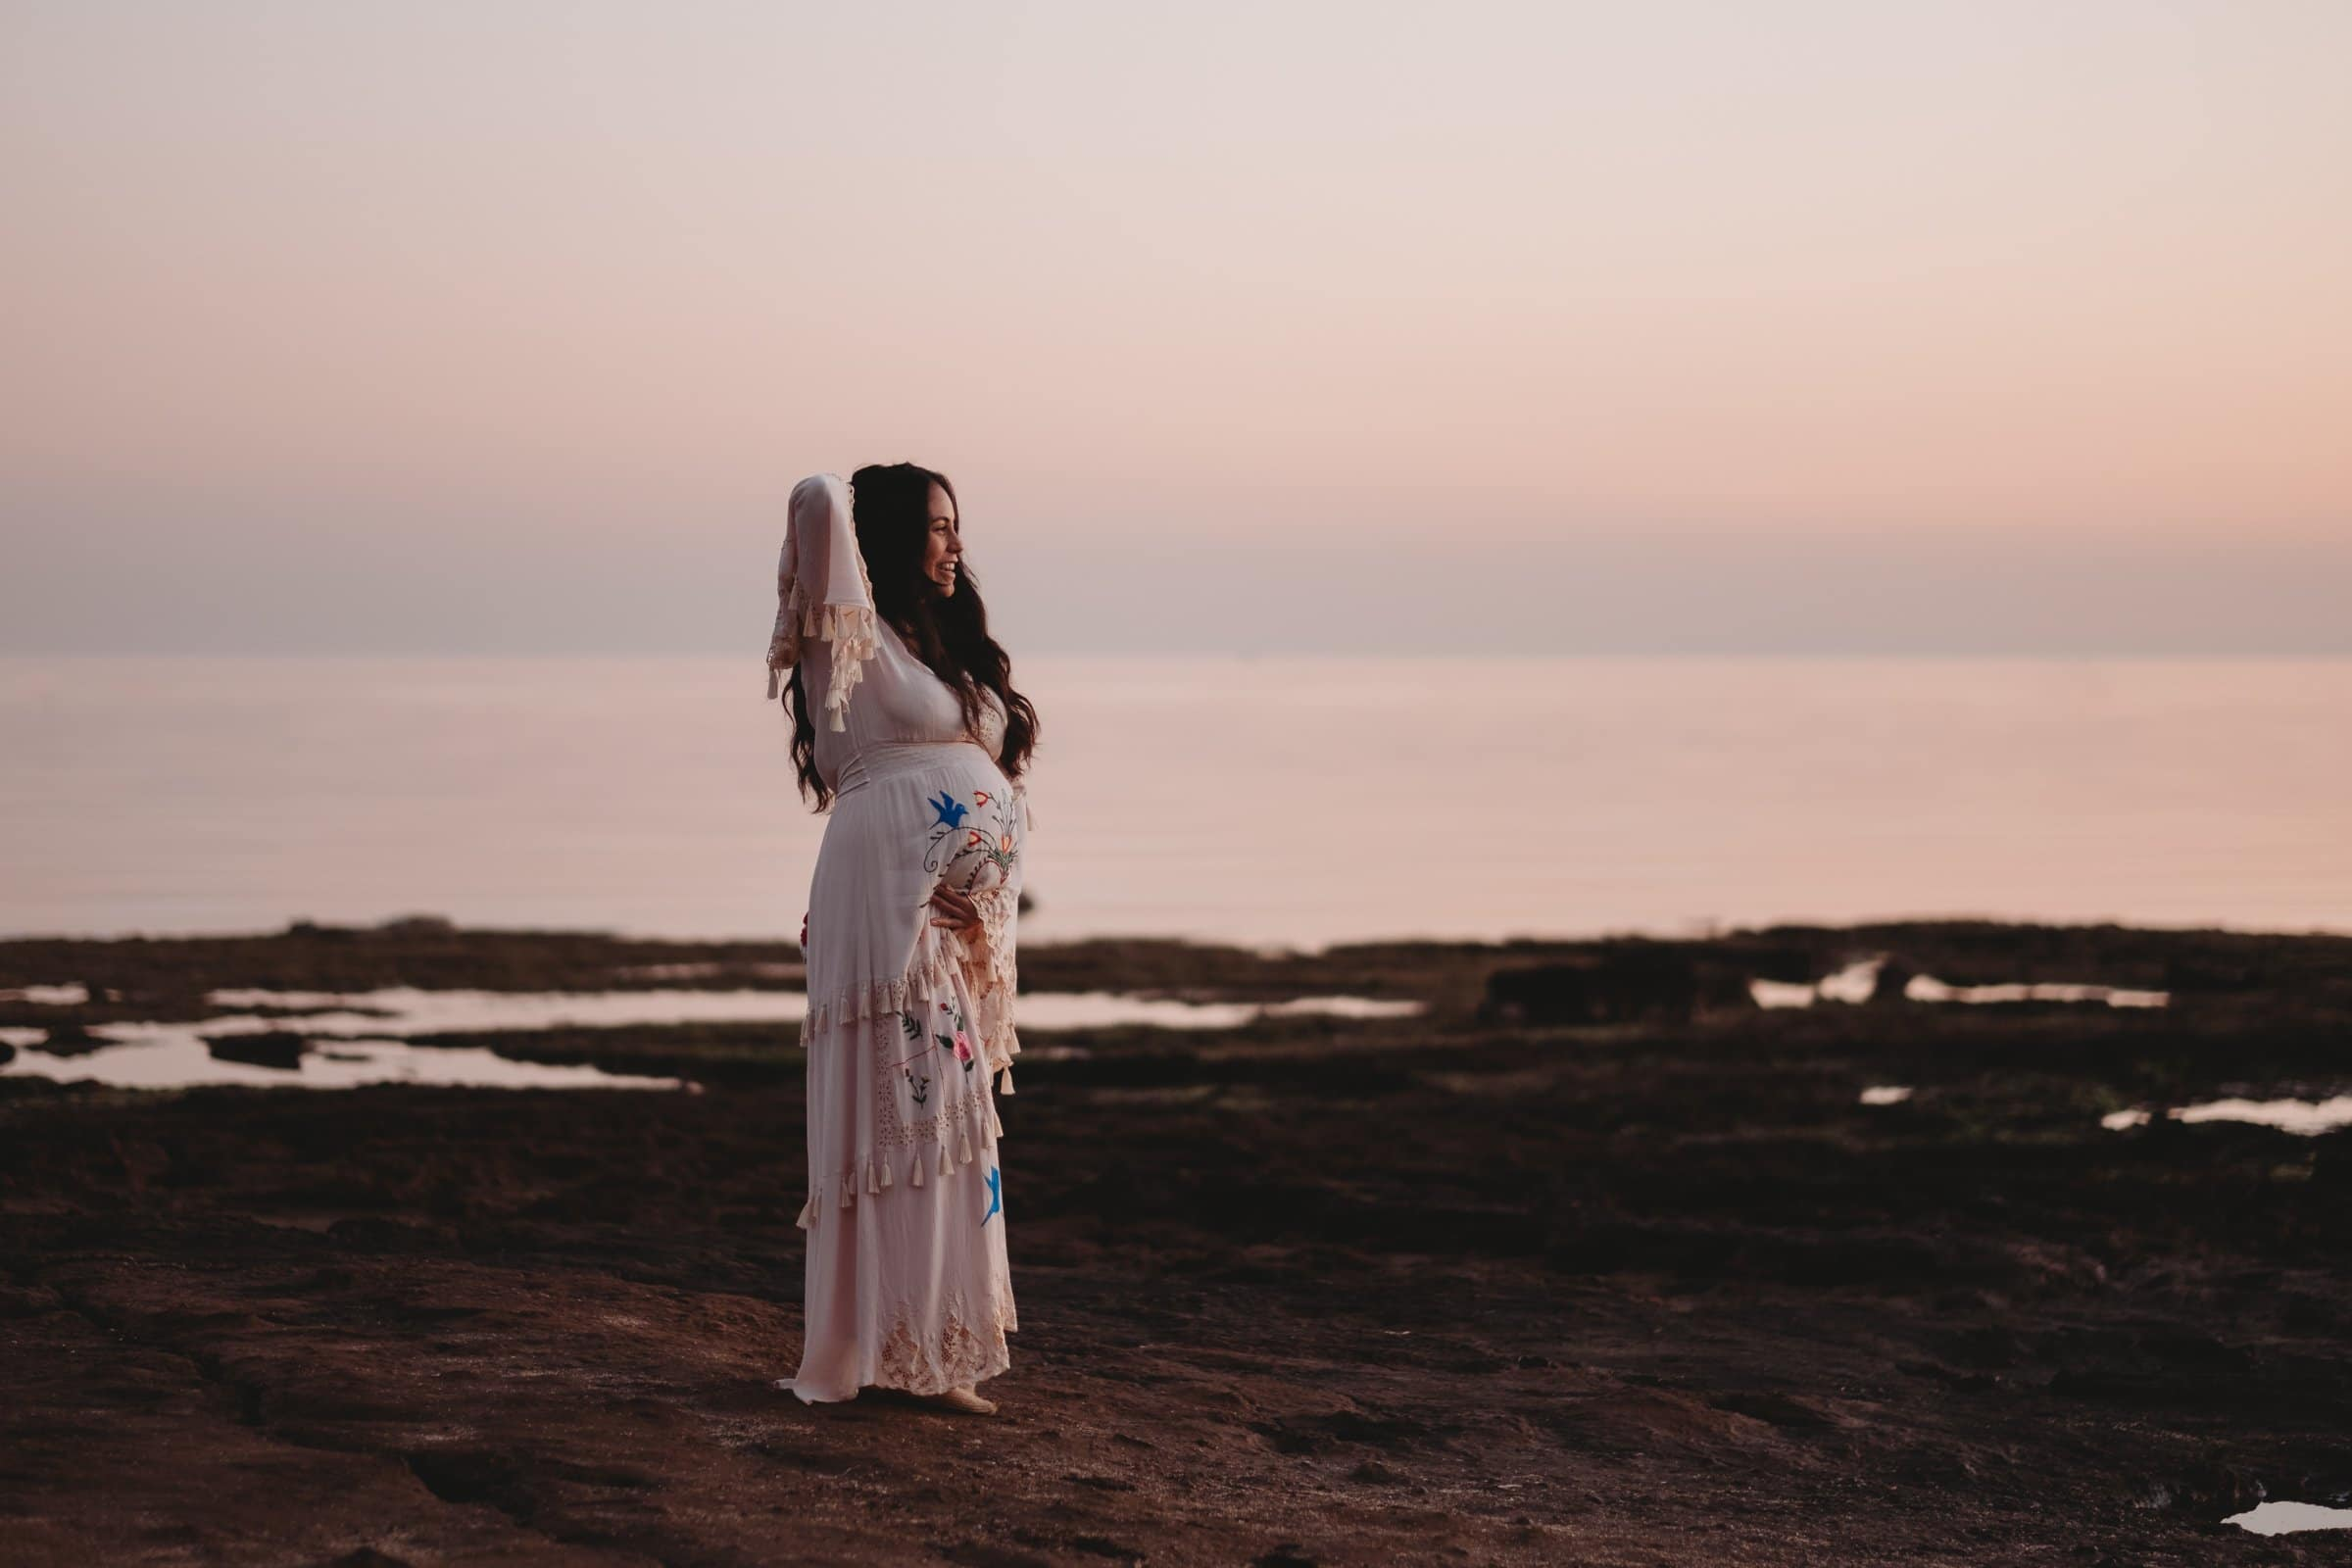 maternity photography Melbourne maternity photographer expecting a baby motherhood women portraits melbourne